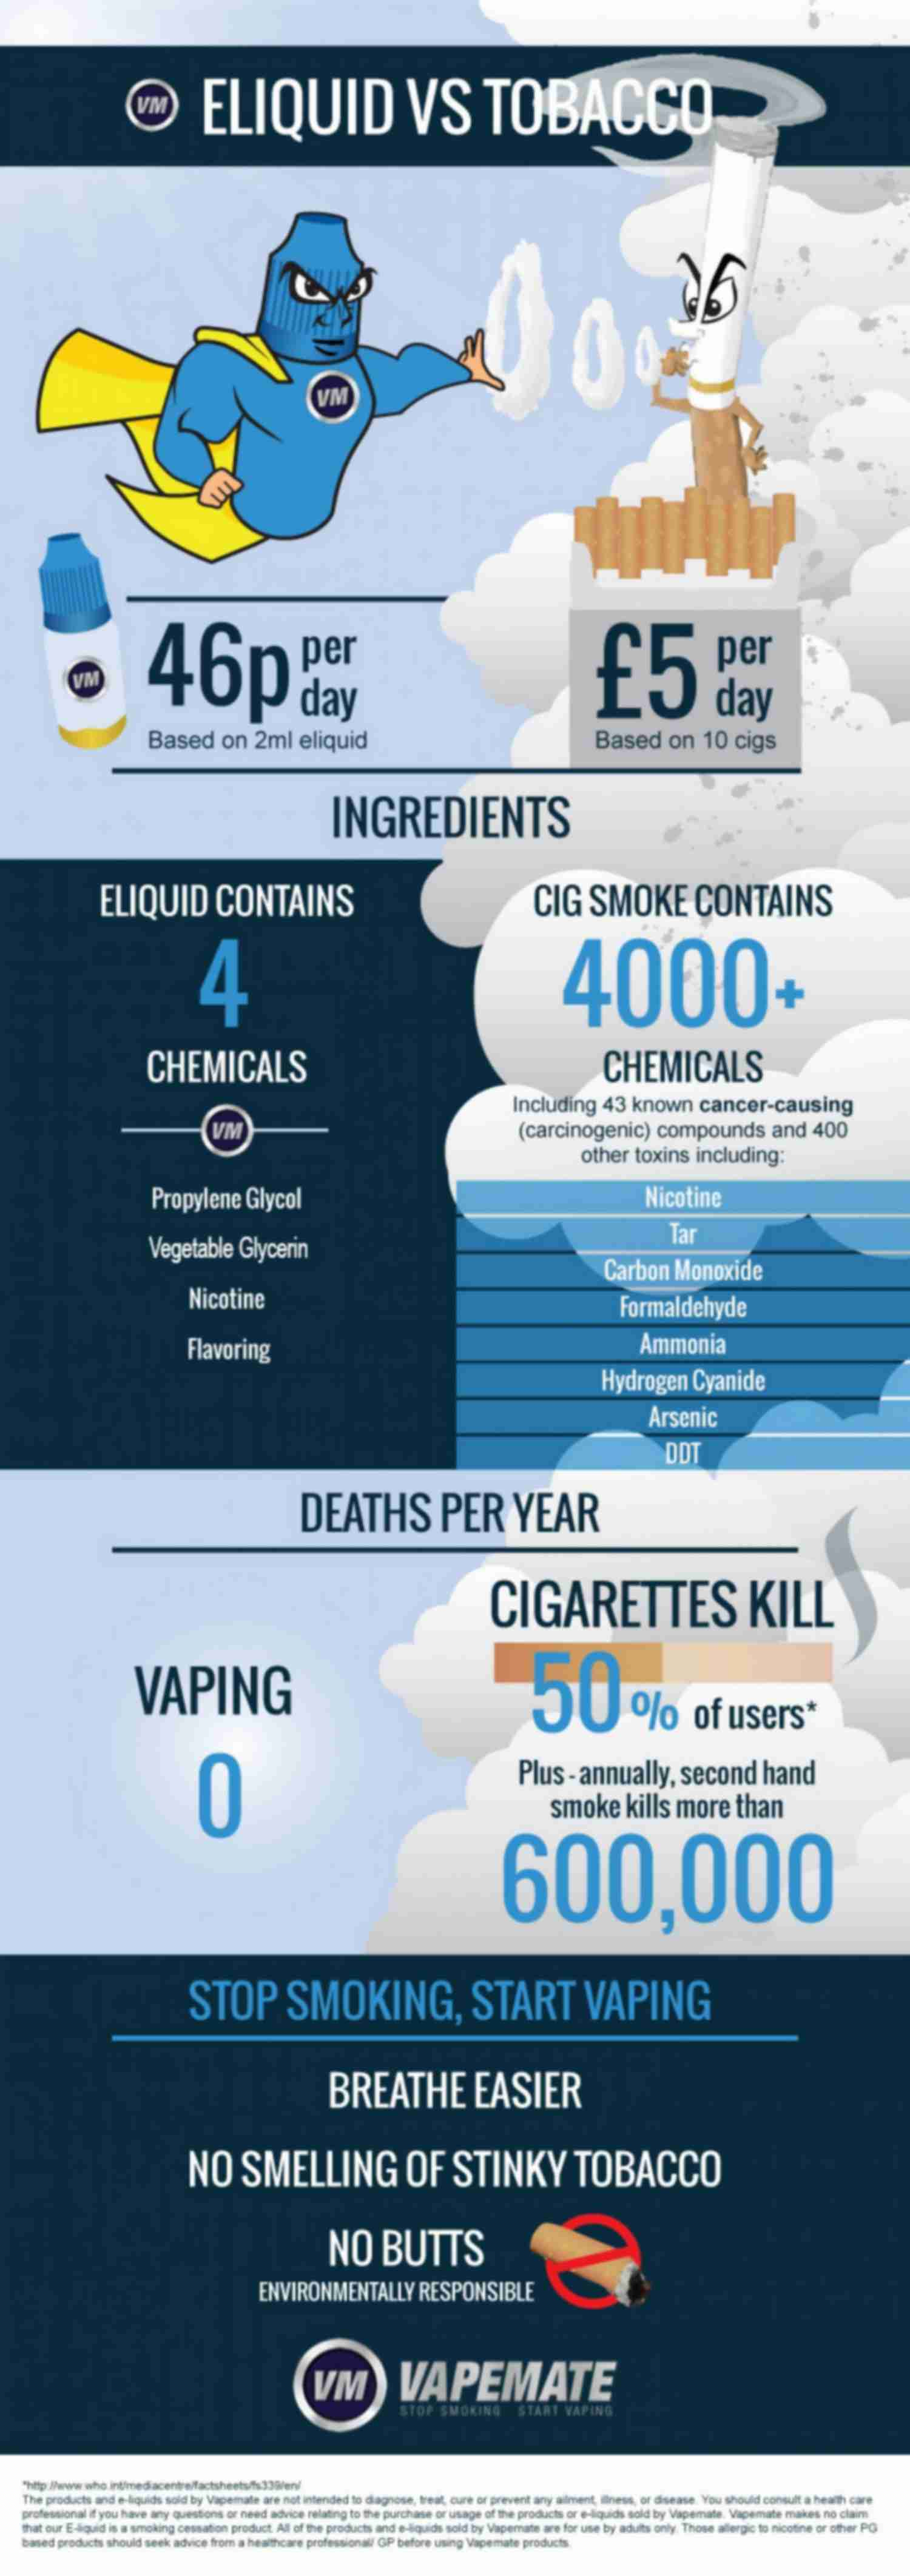 Tabacco vs. Eliquid - take a look at our infographic